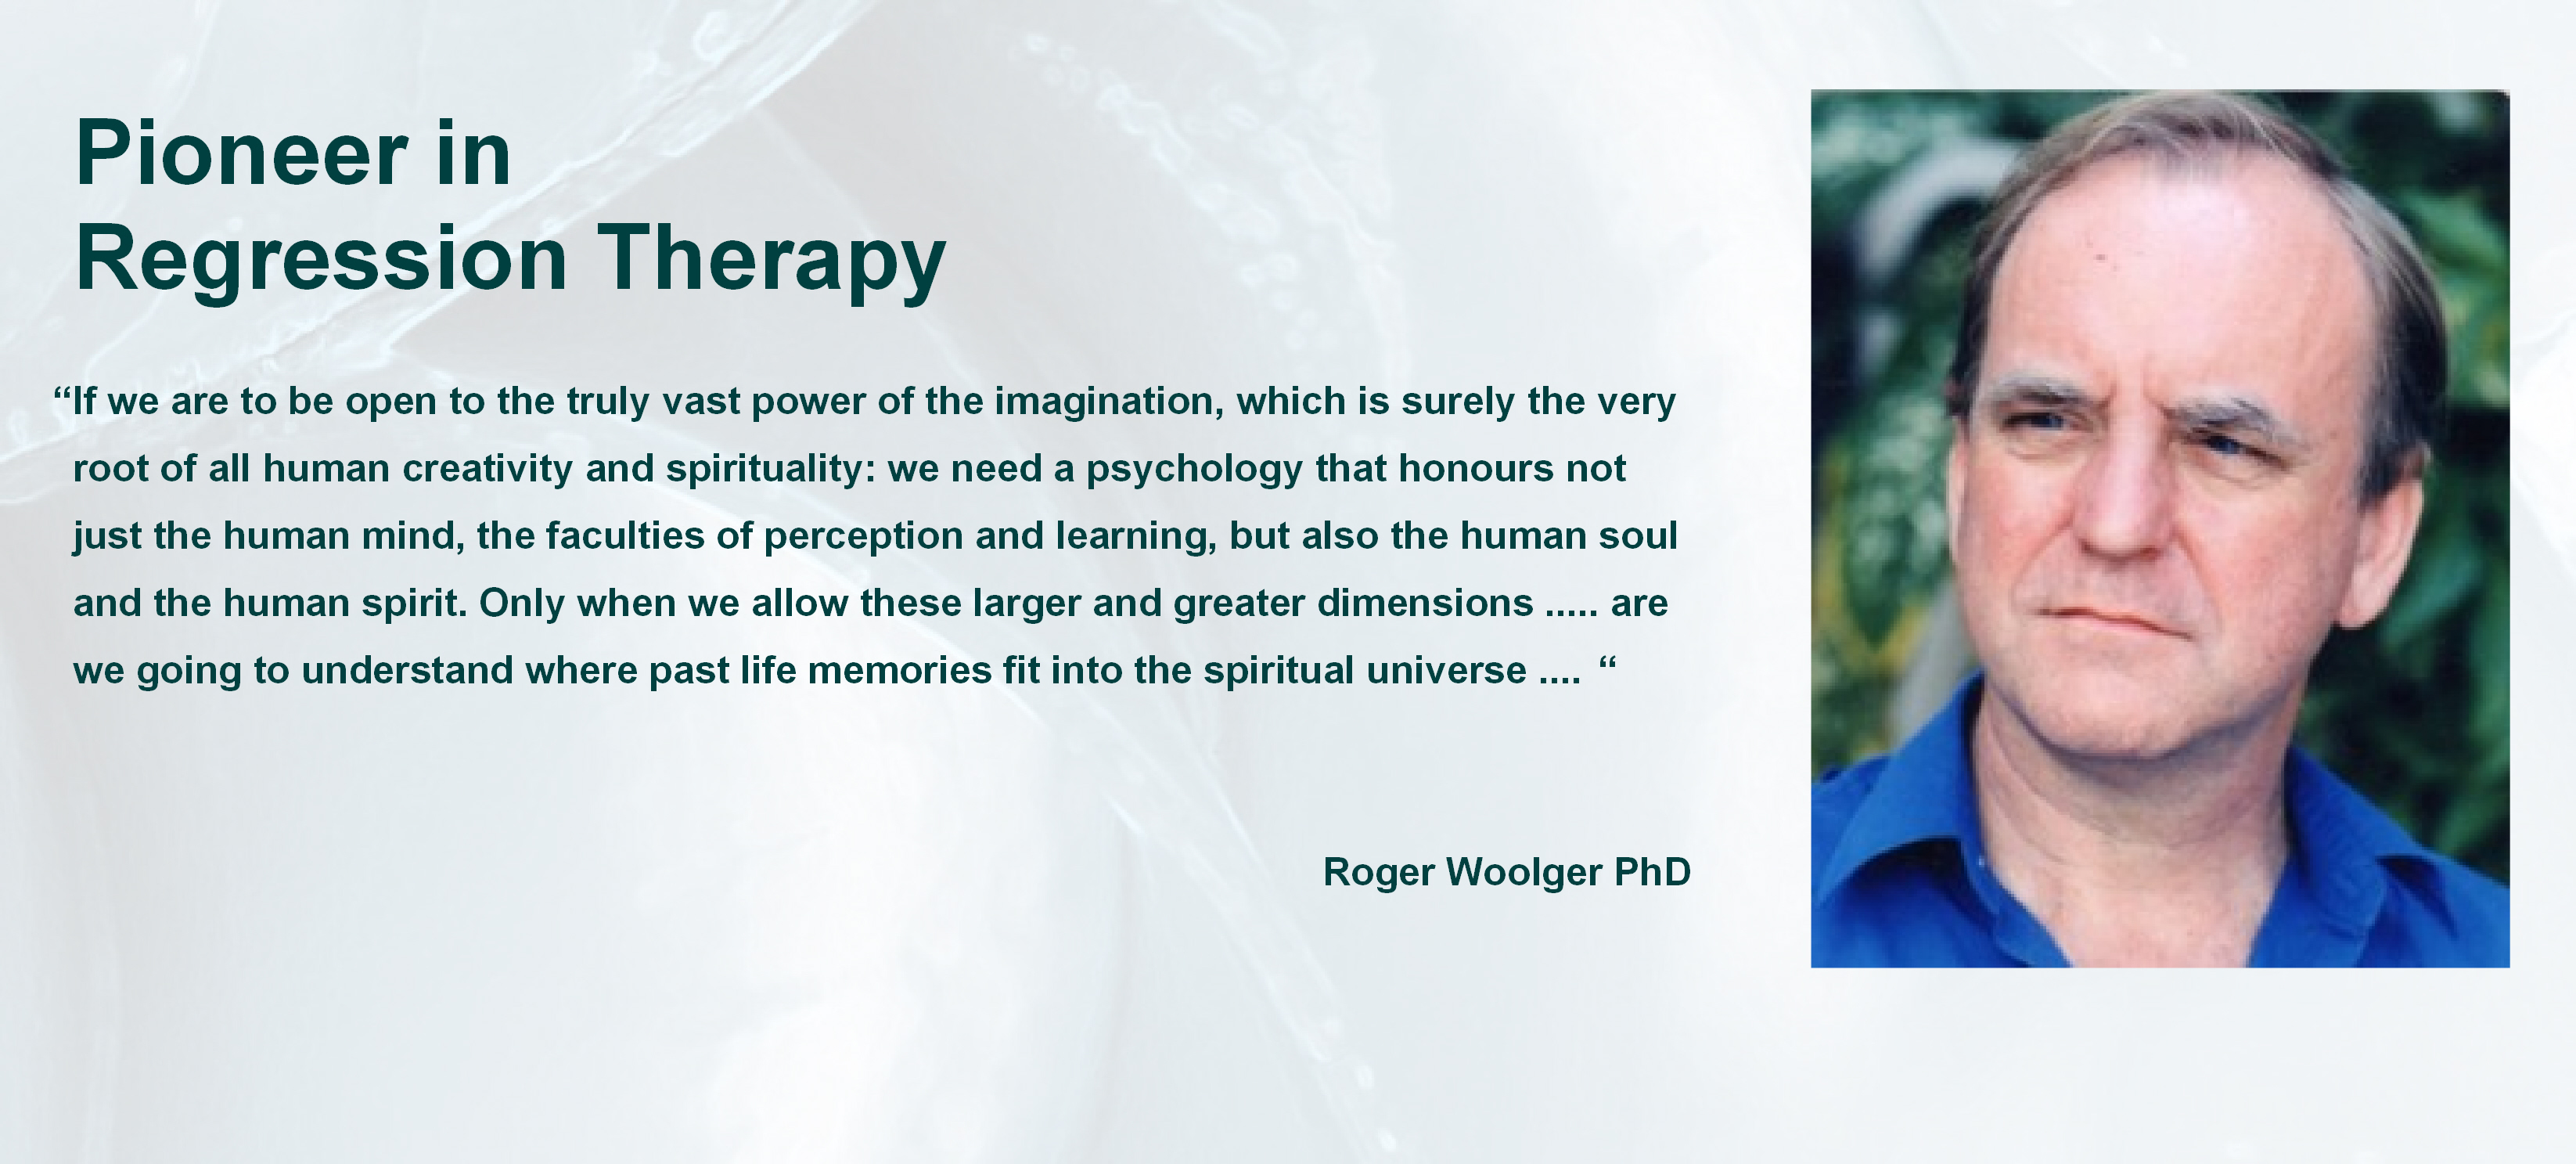 Roger Woolger PhD. creator of Deep Memory Process